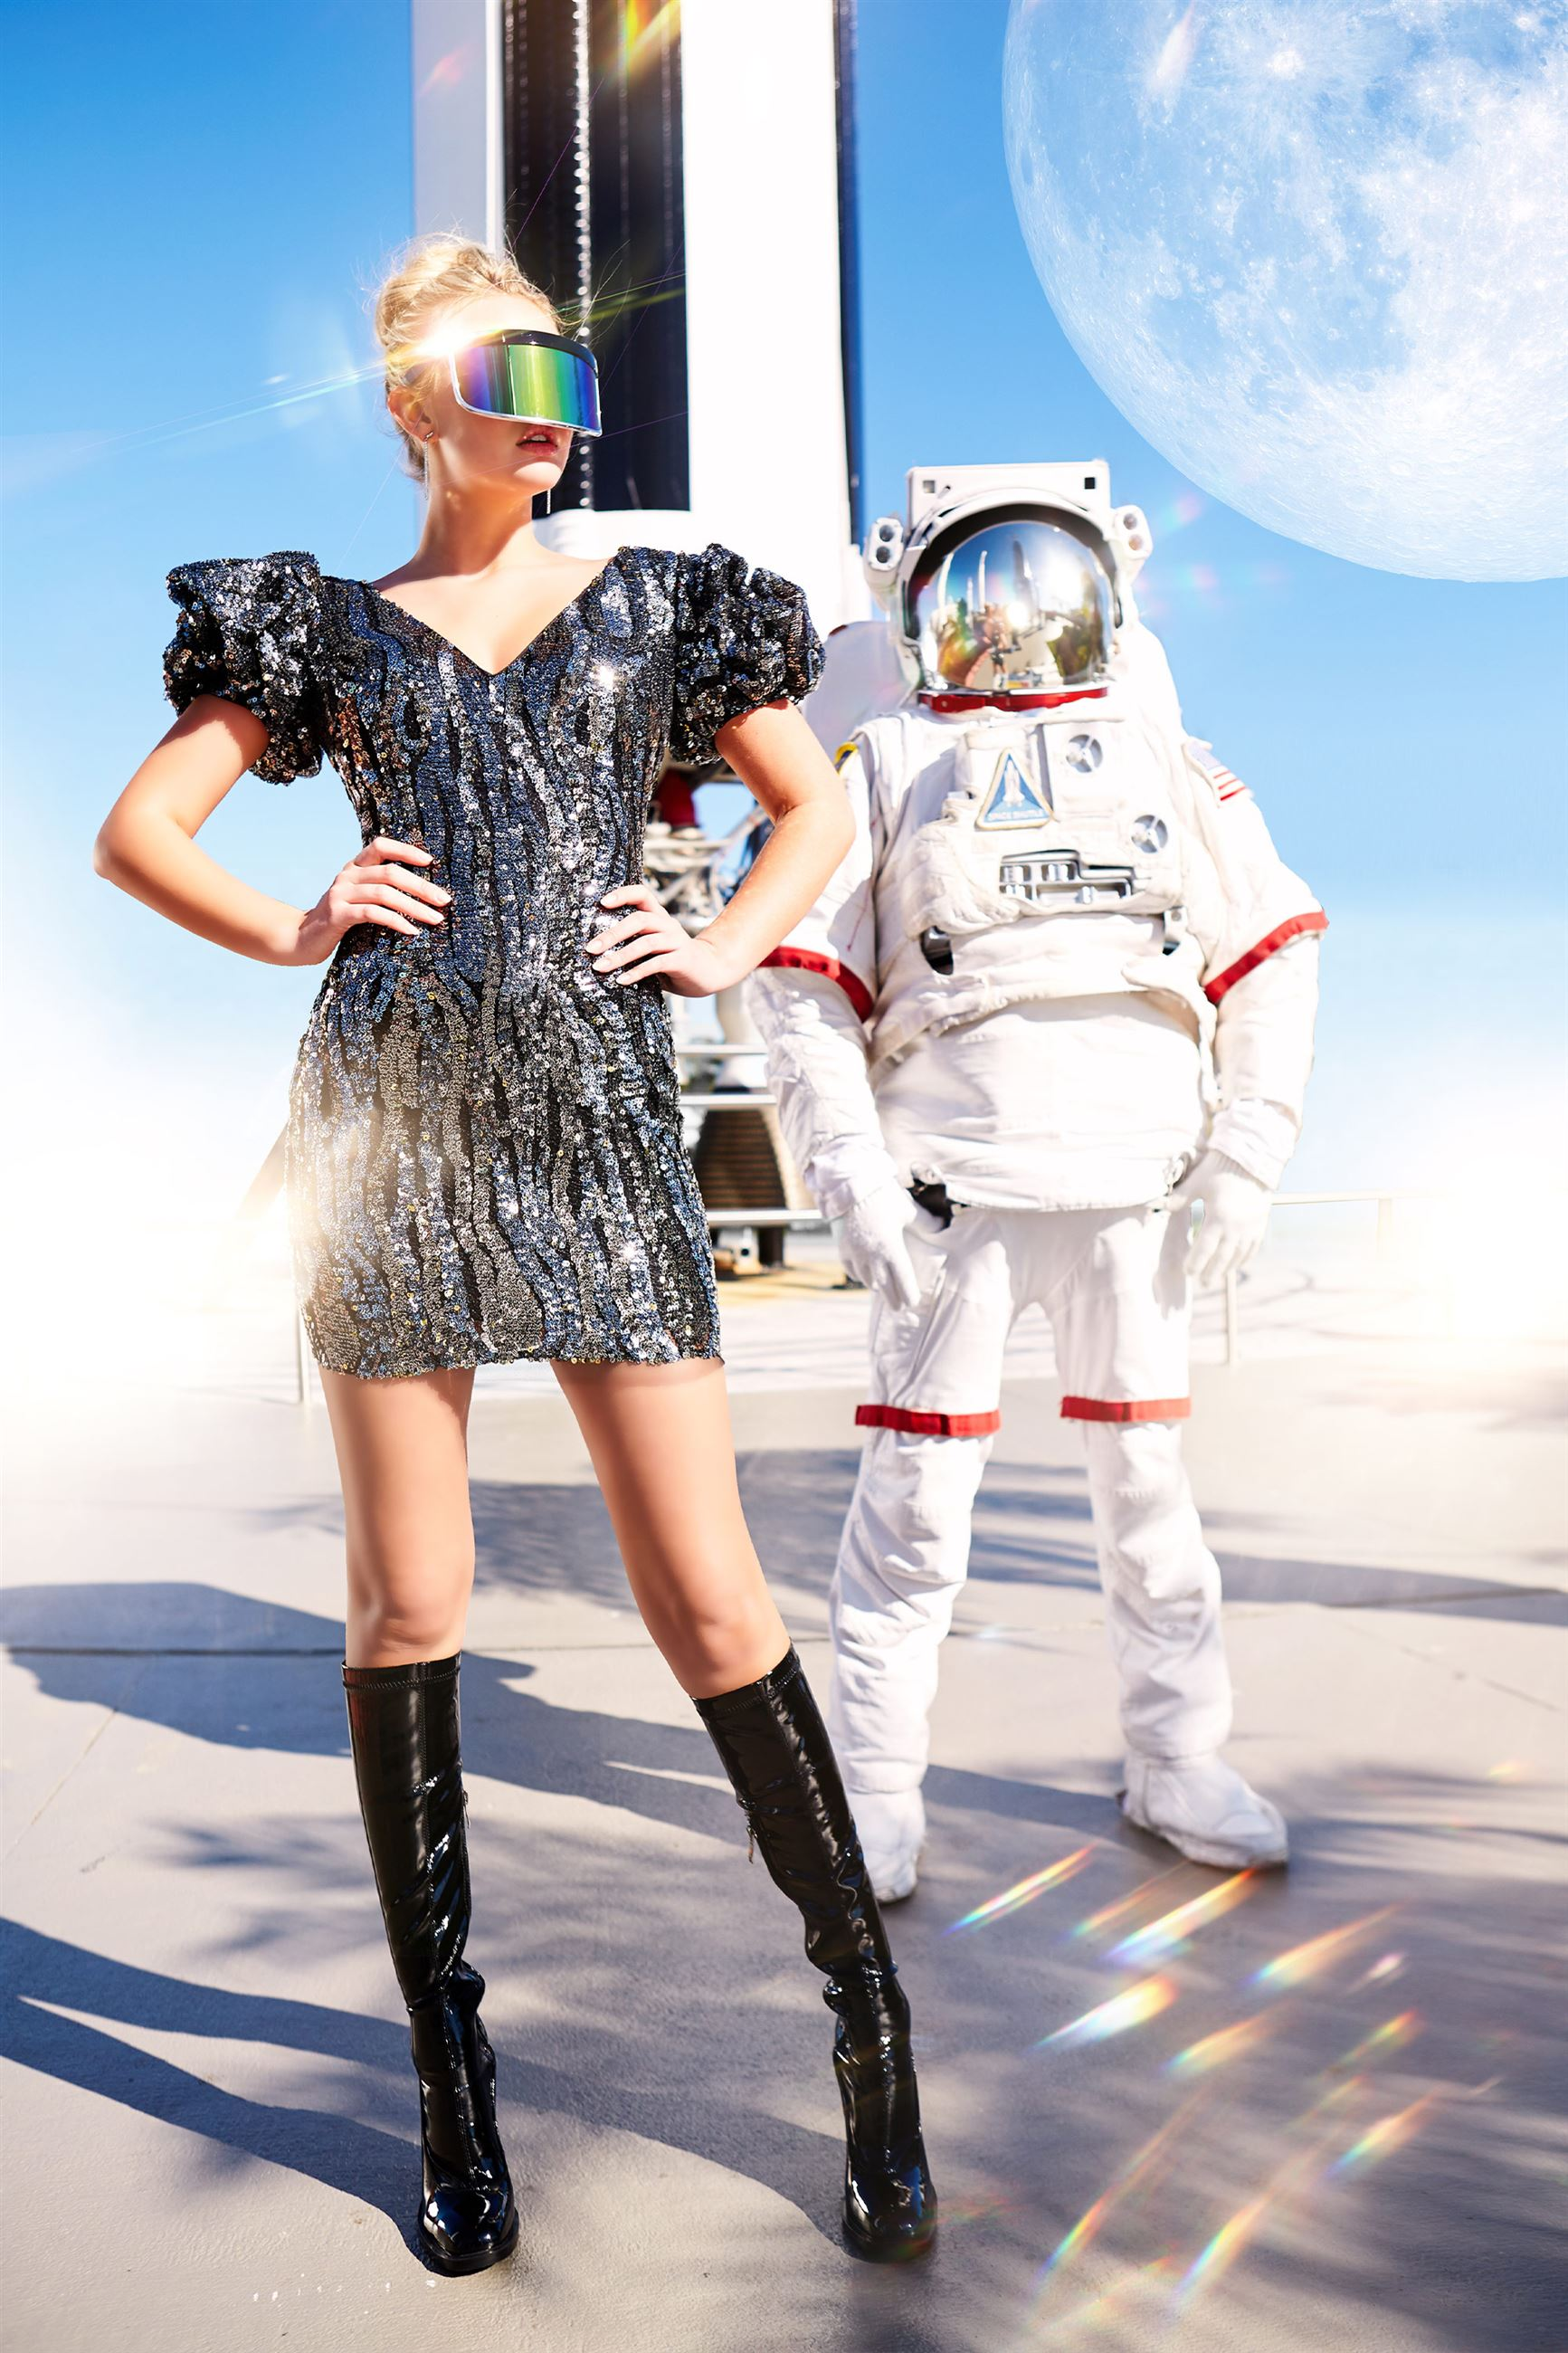 Blonde model in short black and silver dress next to astronaut